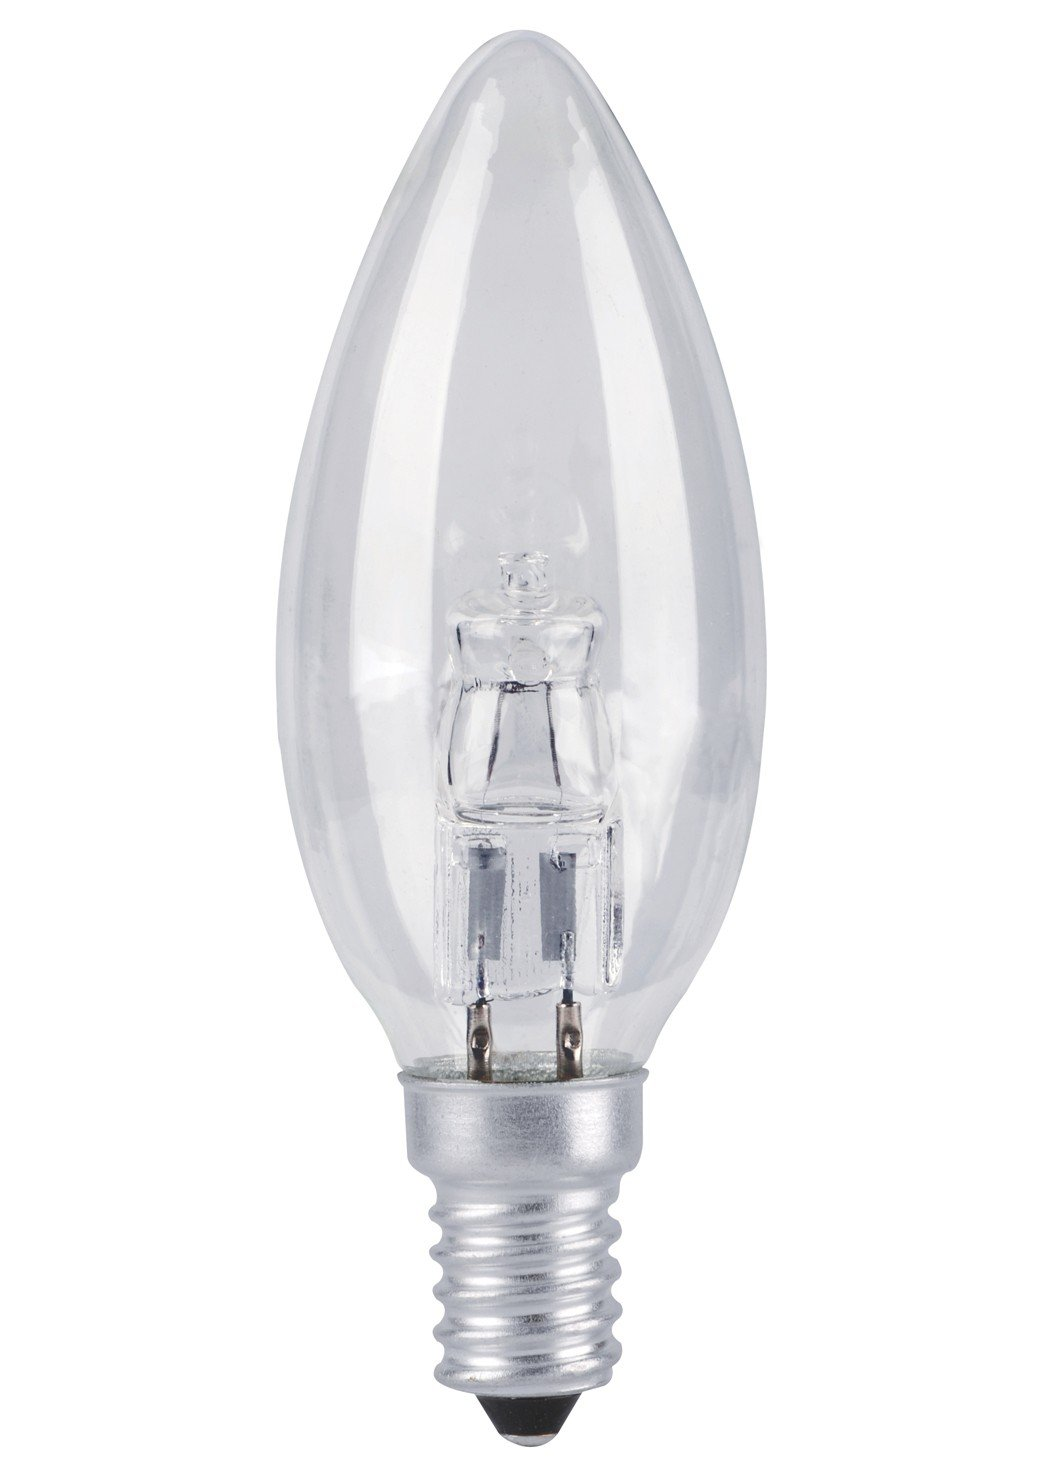 10 X 42W=55W SCREW CAP- E14 - SES AA HALOGEN CANDLE BULBS ENERGY SAVING DIMMABLE CLEAR LIGHT LONG LIFE LAMP